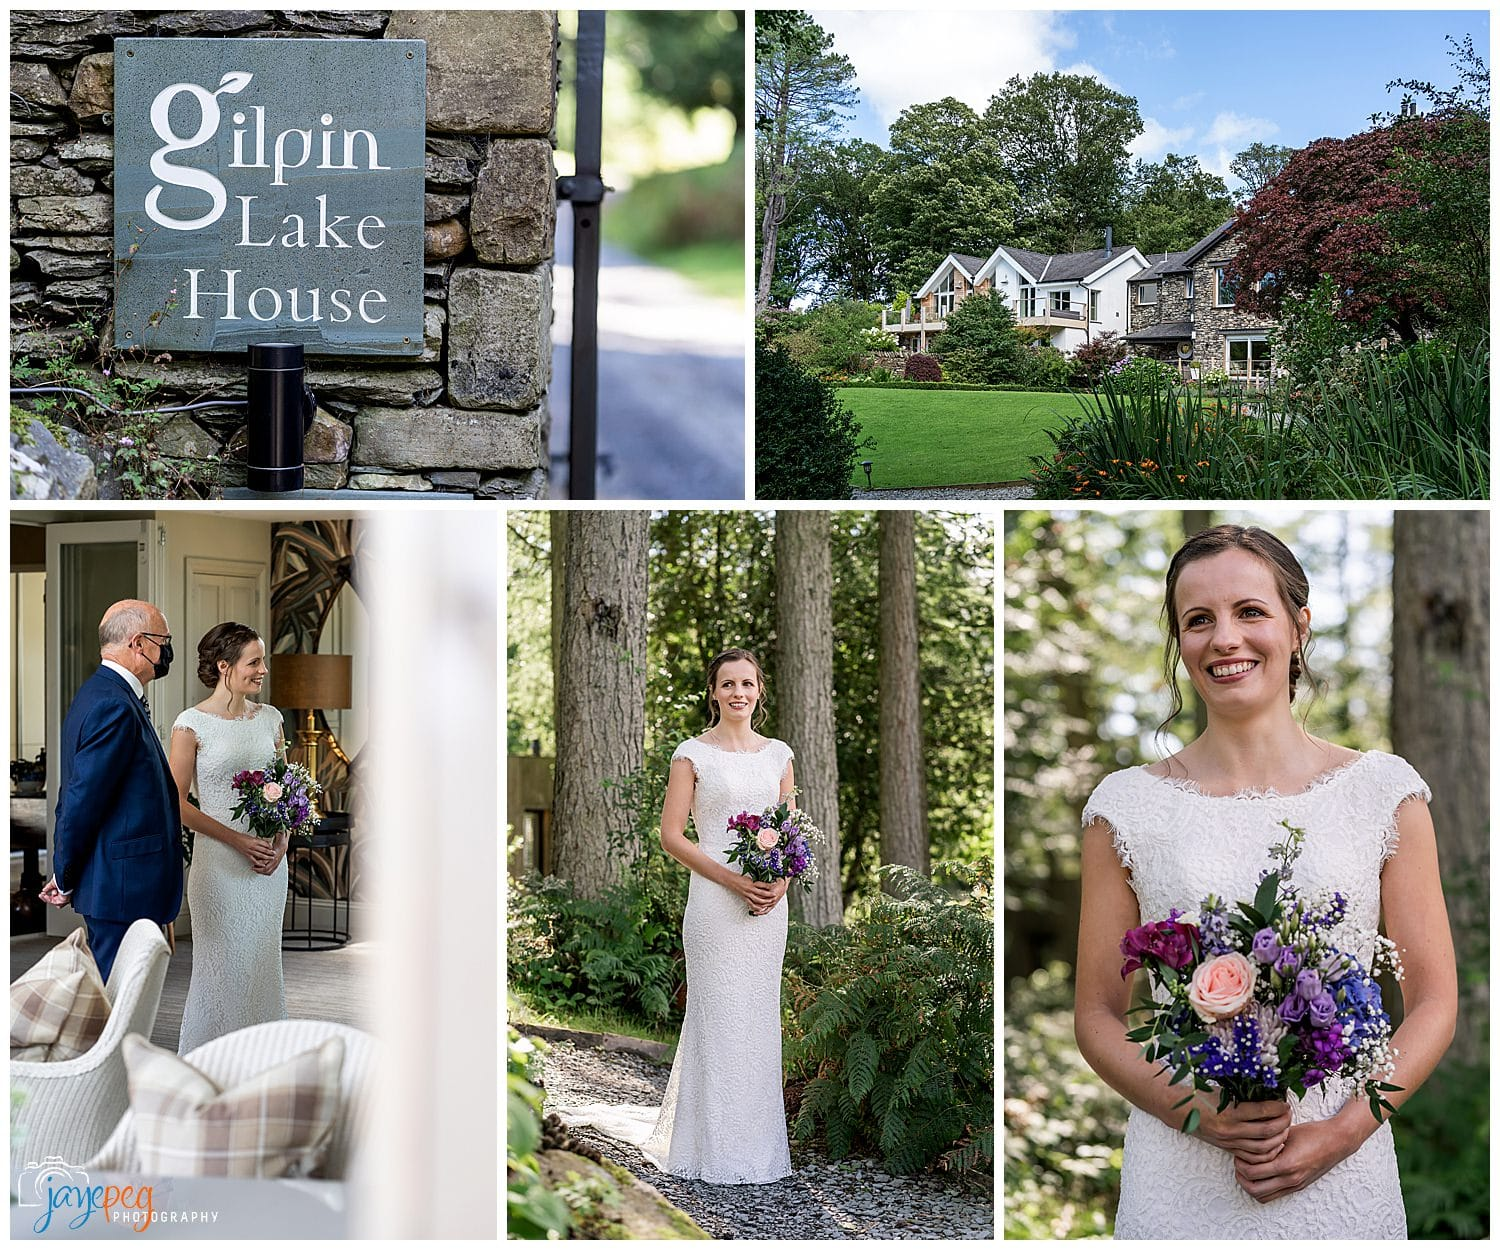 pre wedding photographs at gilpin lake house near windermere